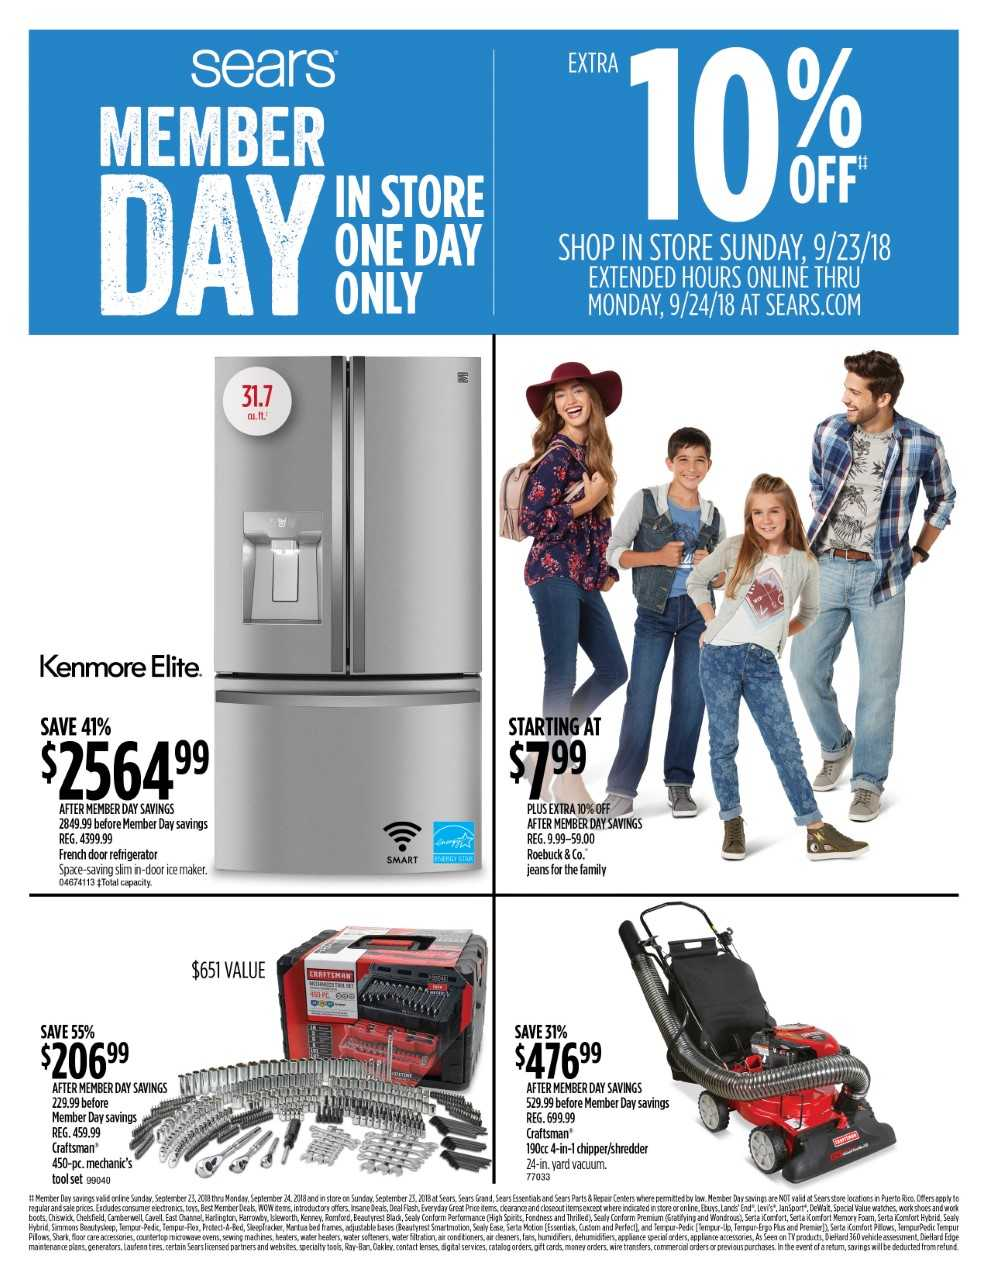 SEARS Member Event - Today Only!